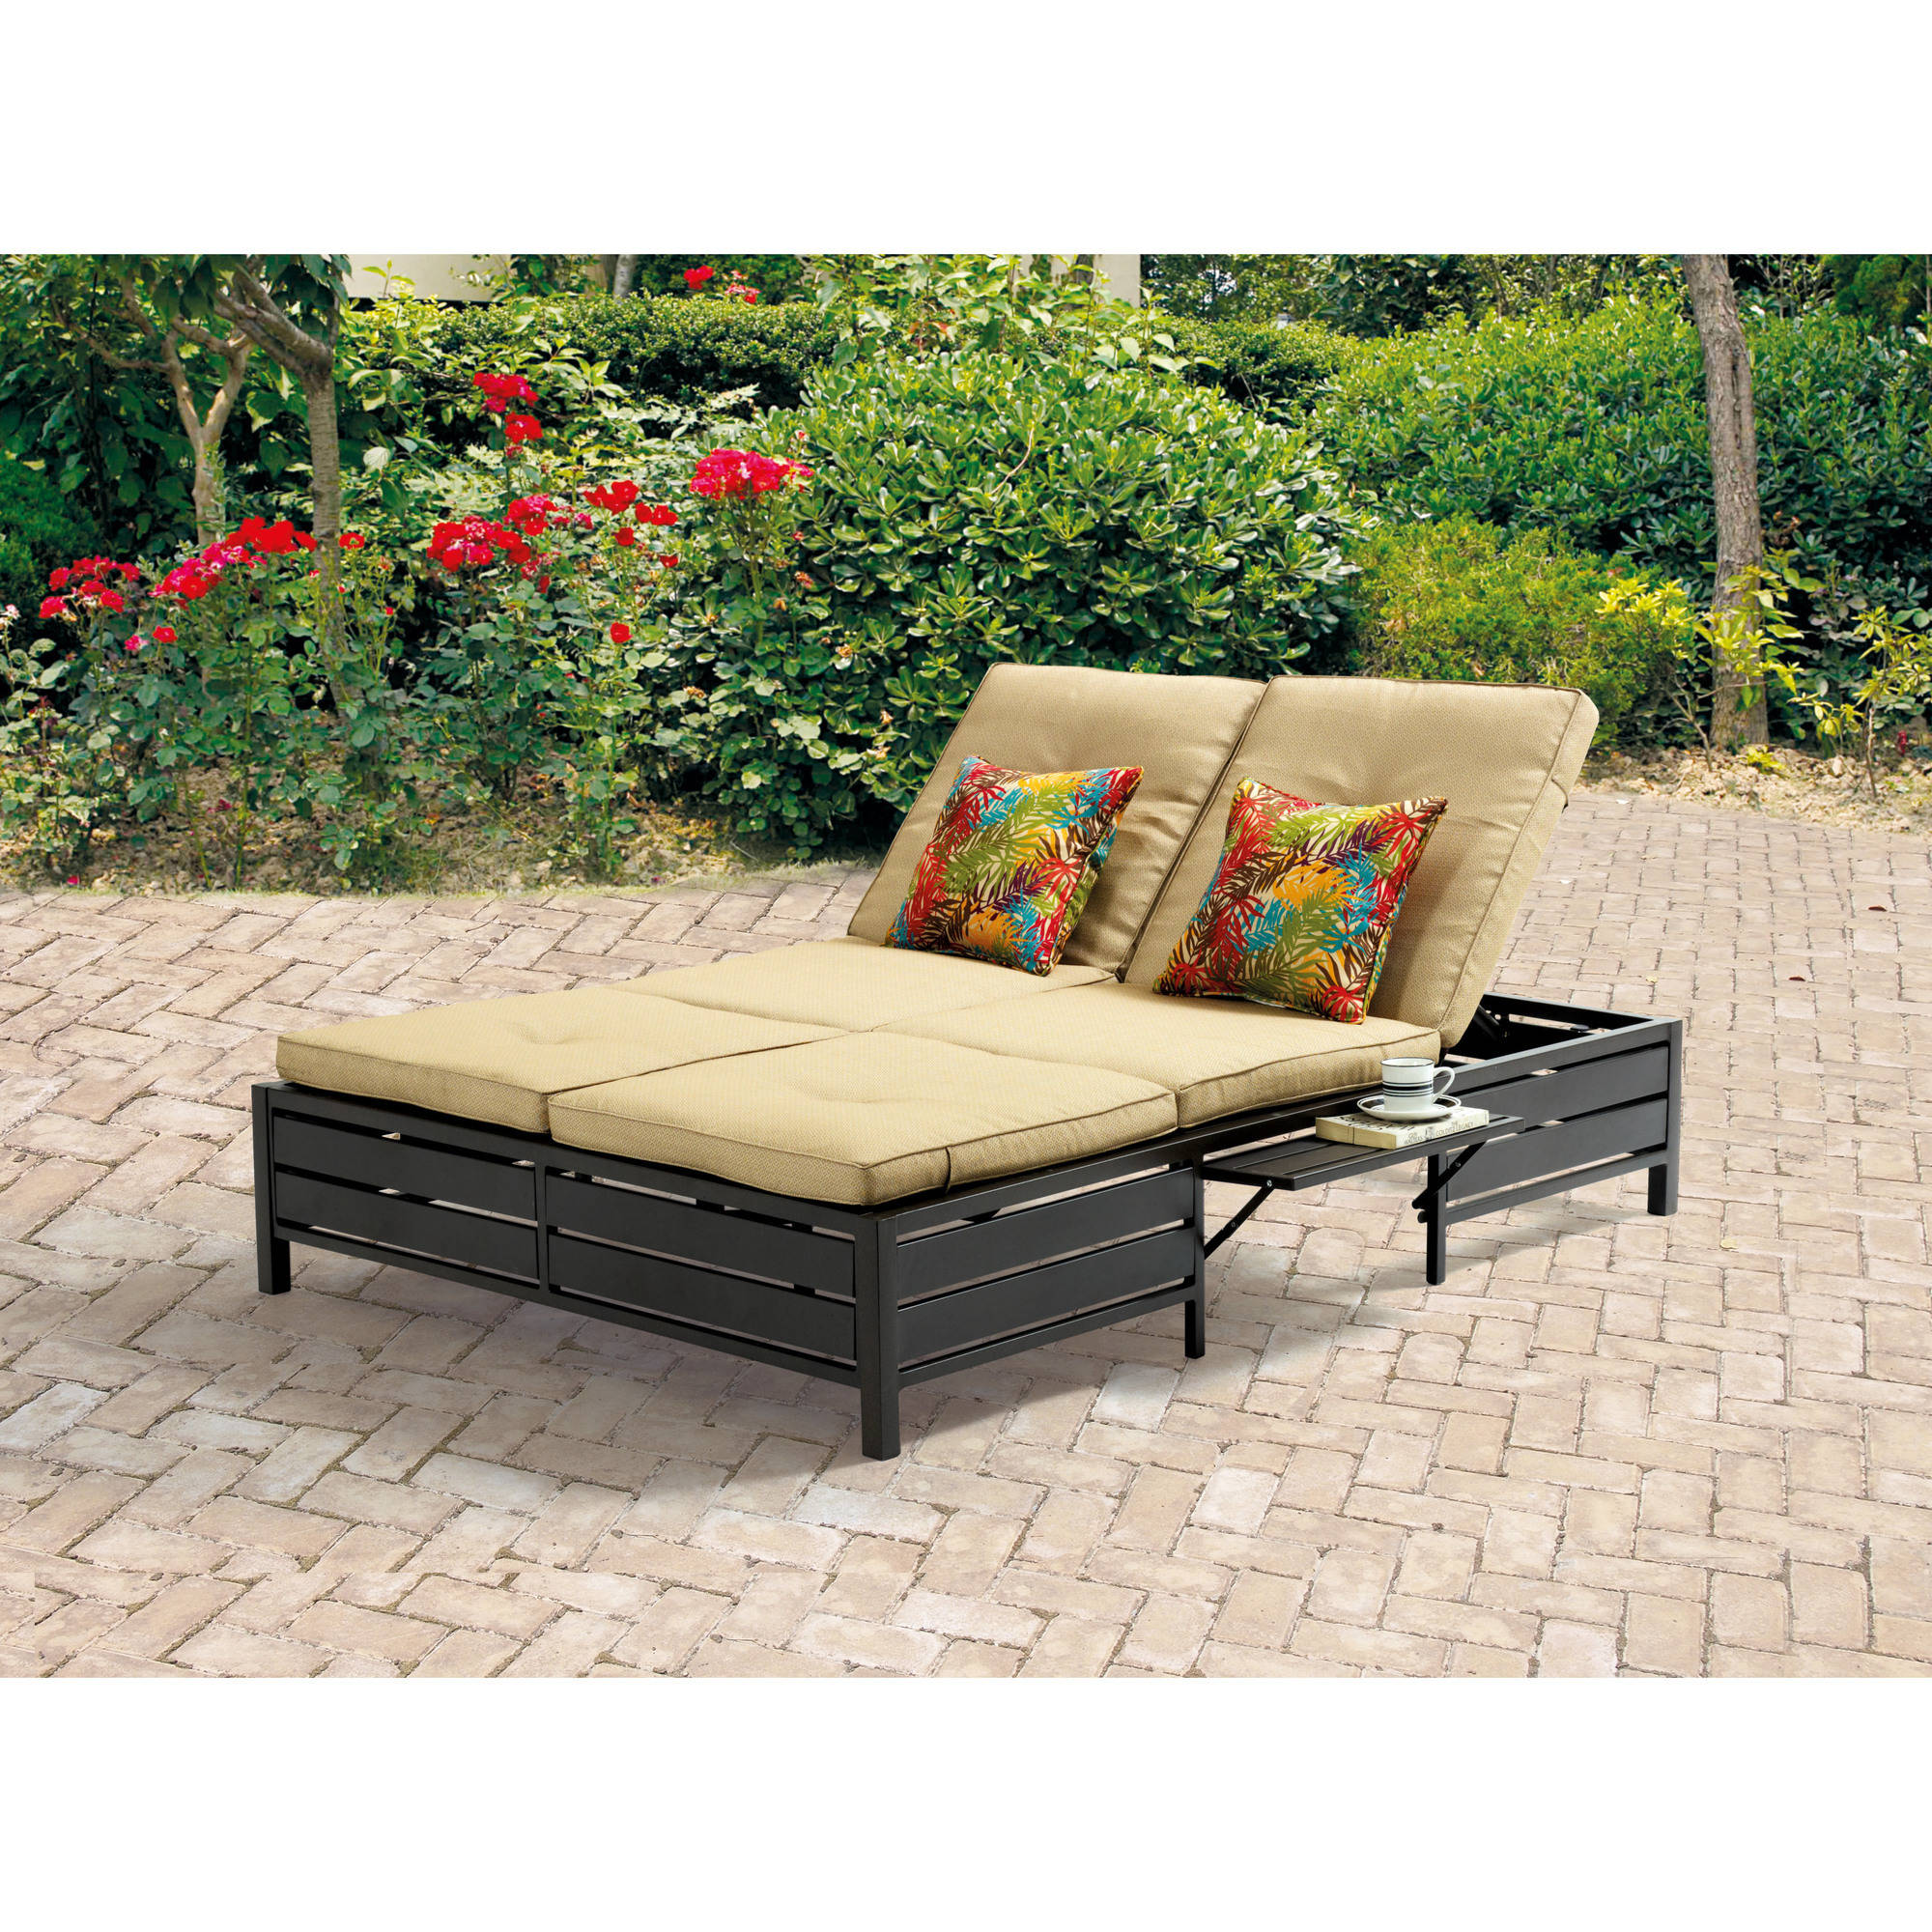 classy chaise chair replacement of heights s about braddock lounge outdoor cushions double